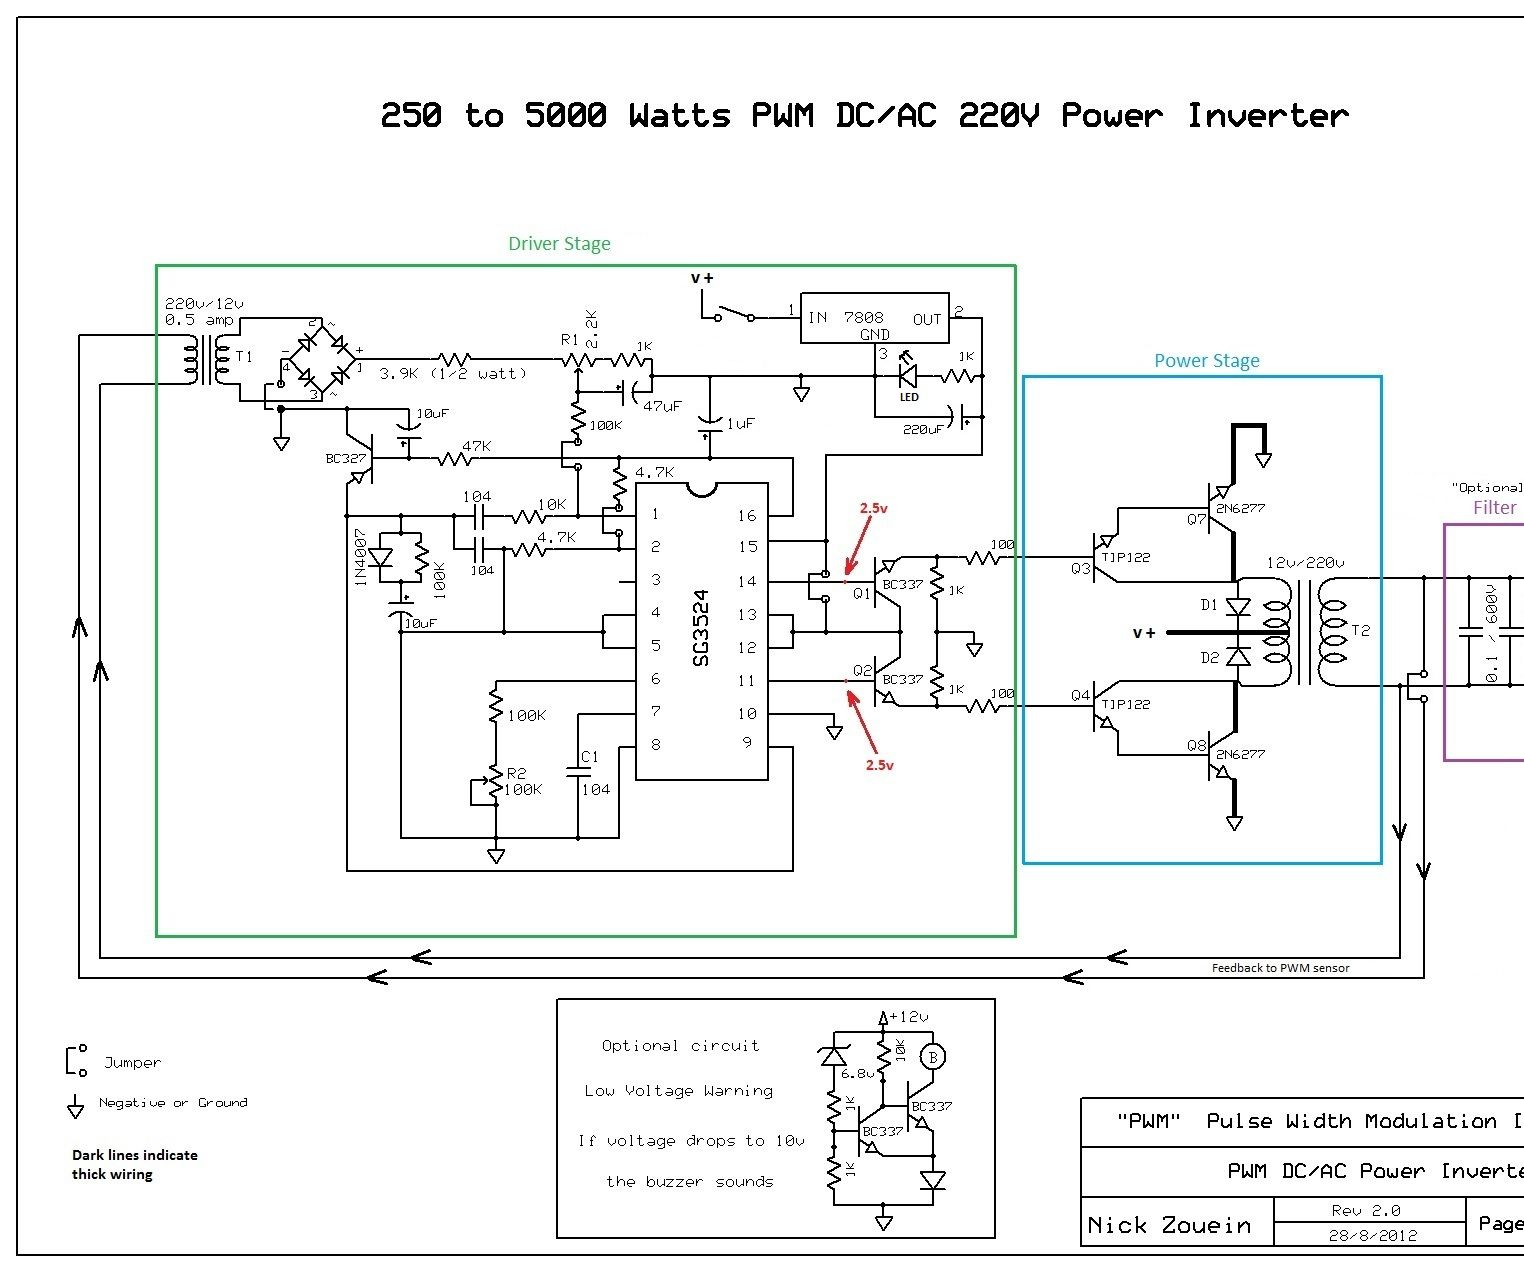 small resolution of 250 to 5000 watts pwm dc ac 220v power inverter ac inverter circuit diagram likewise solar panel micro inverter wiring